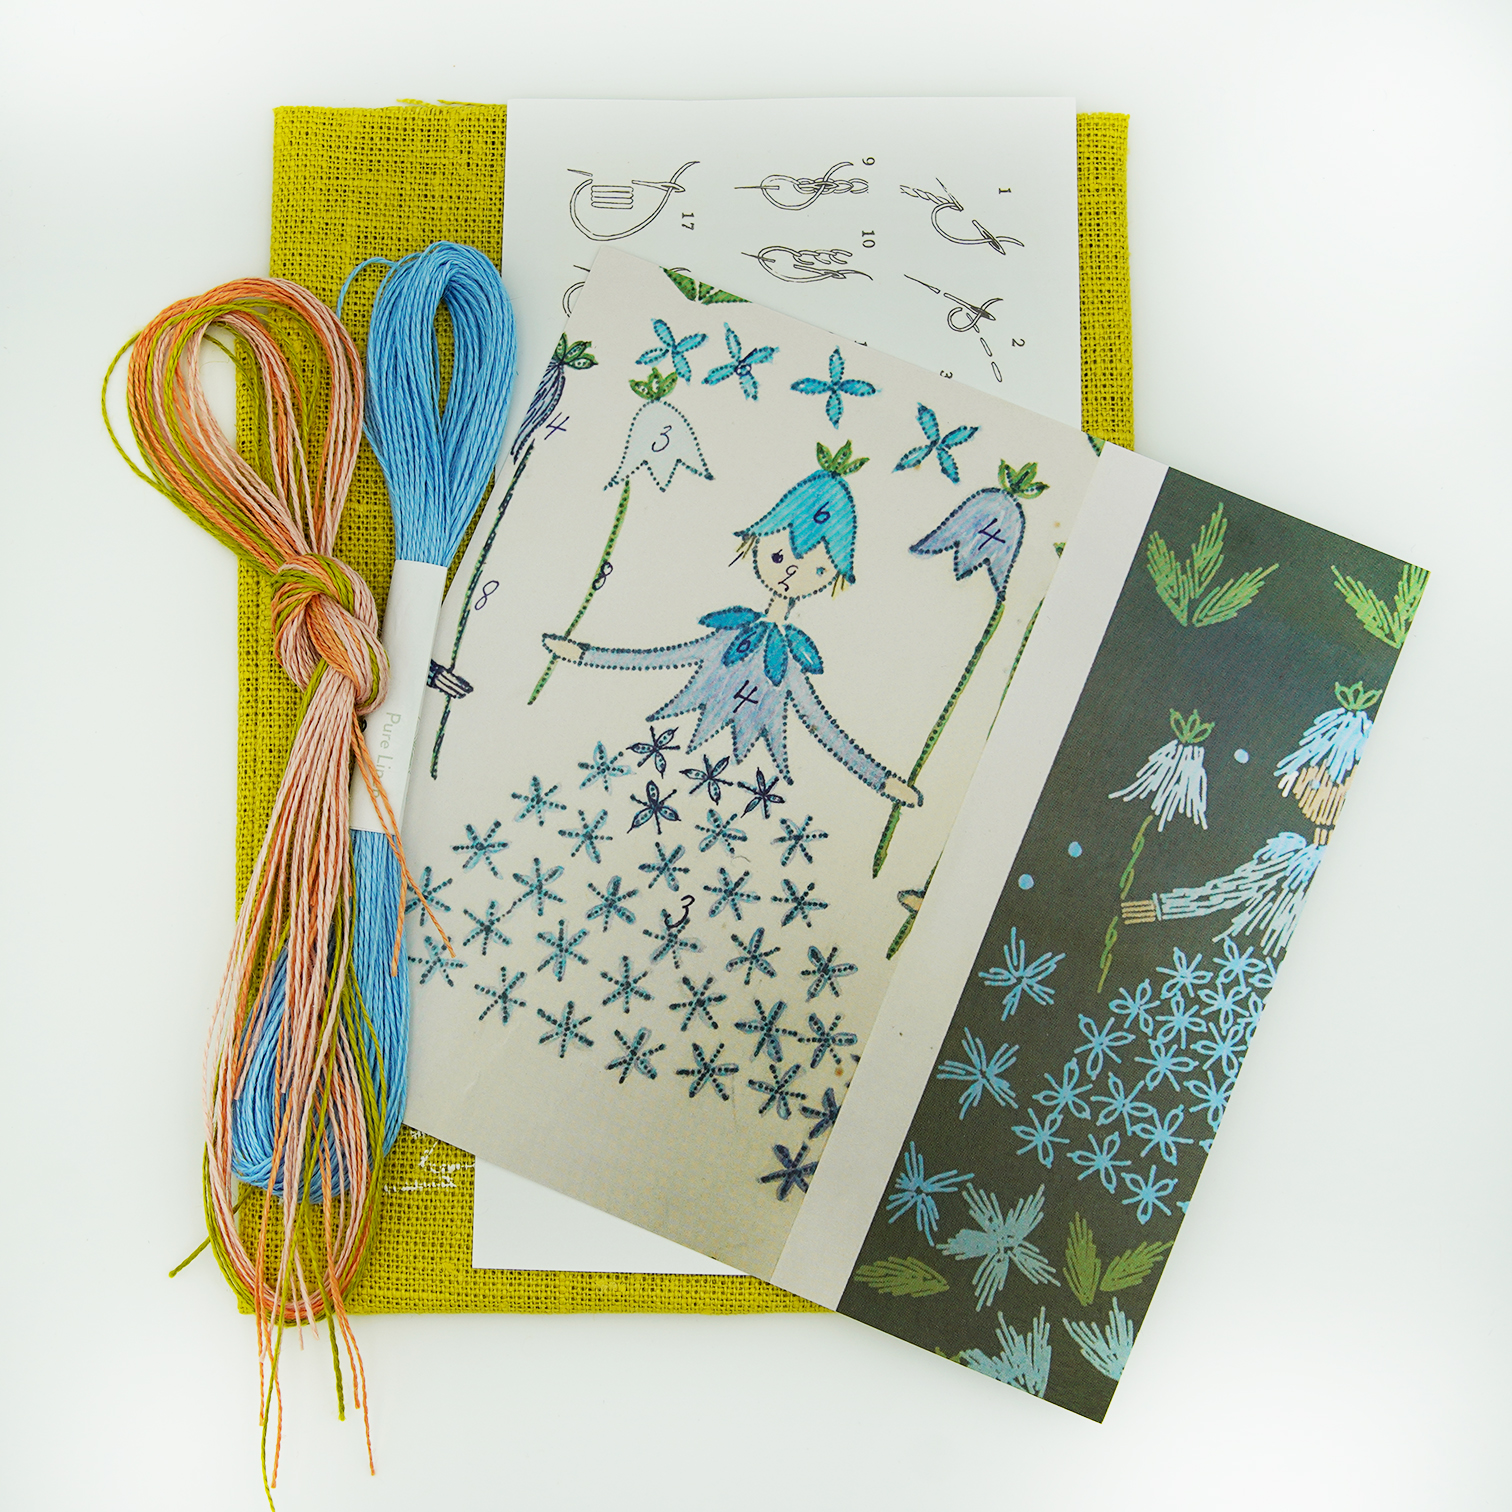 Linladan - Bluebell Girl - Swedish Embroidery Kit 141